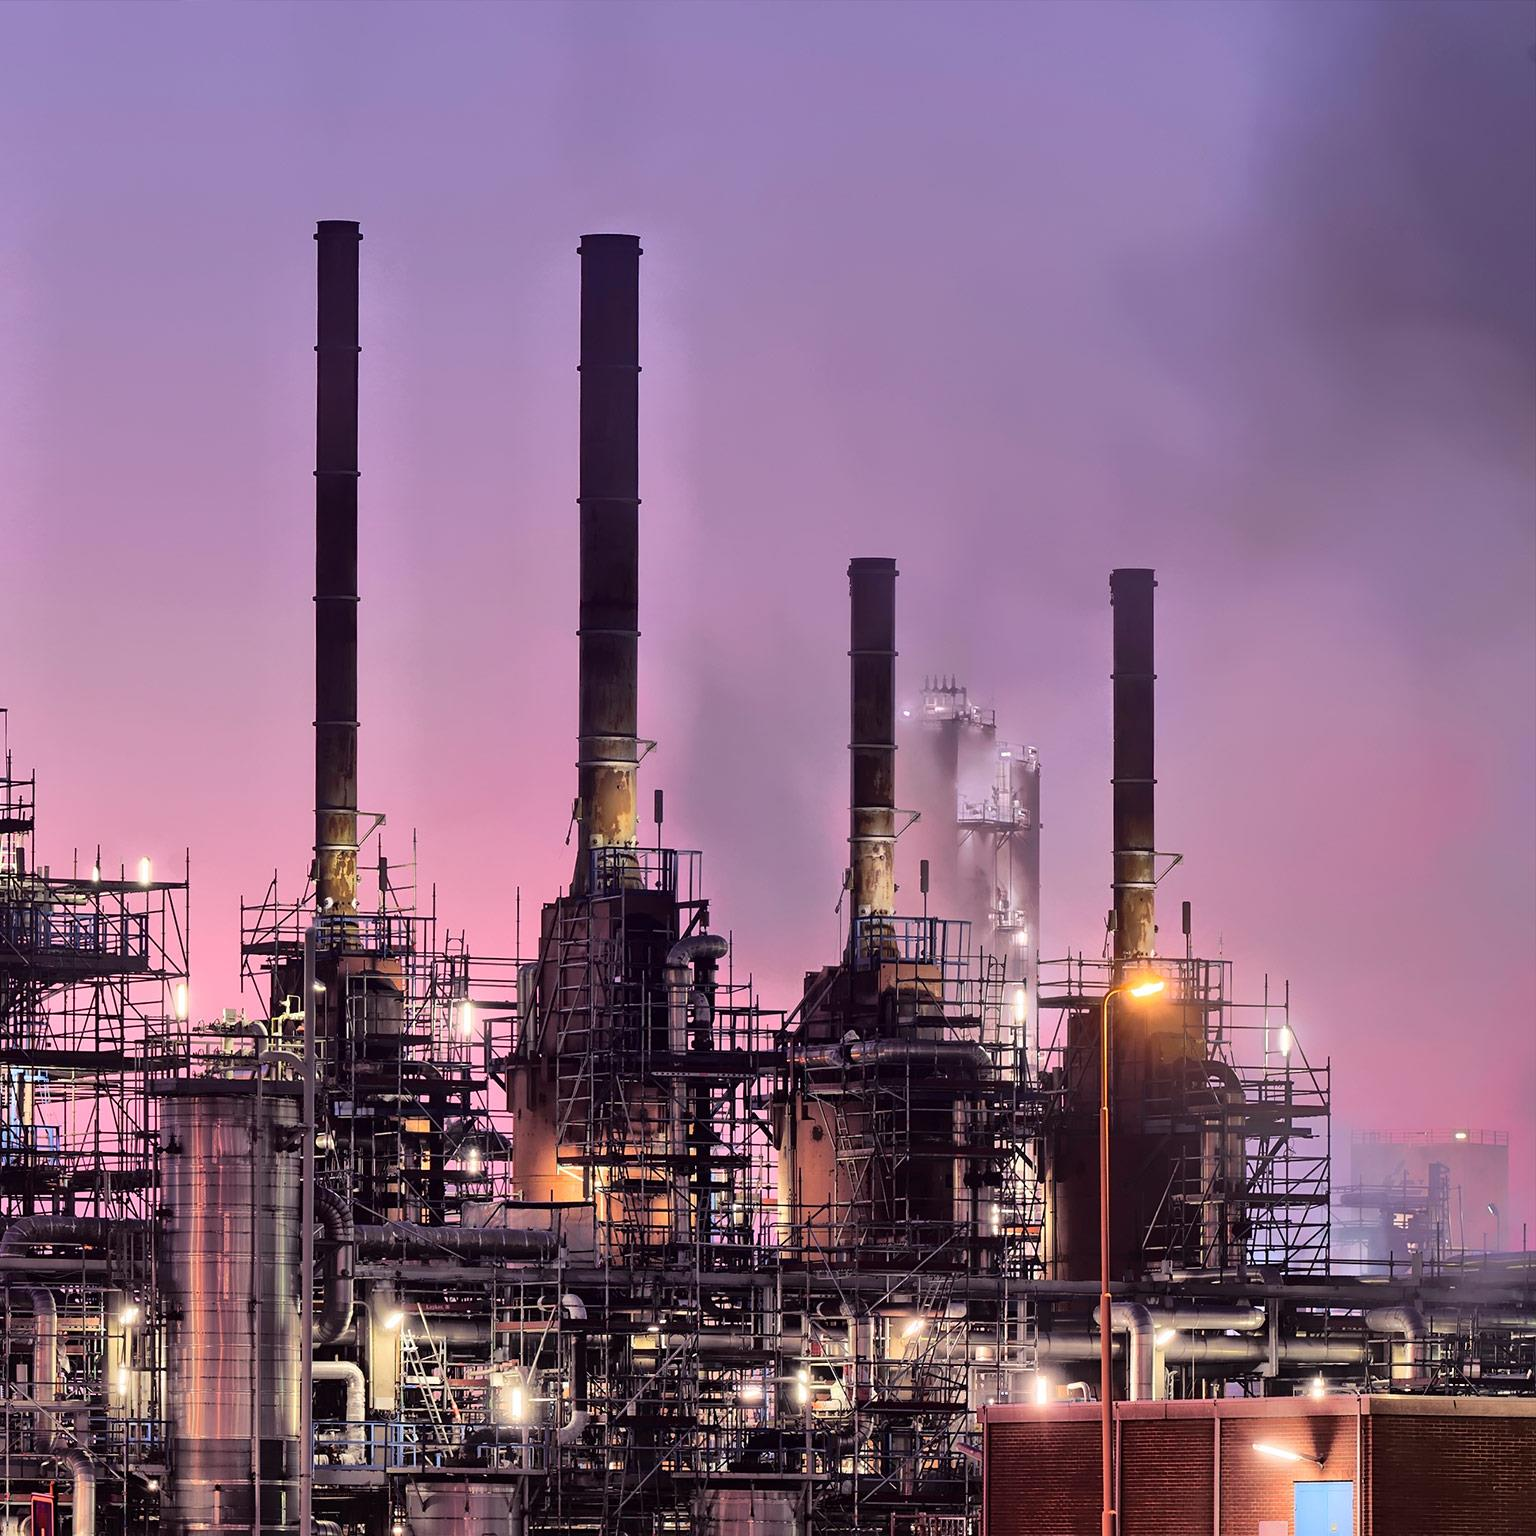 zychol chemical industry The global market for chemicals from fluorine was about us$16 billion per year as of 2006 the industry was predicted to reach 26 million metric tons per year by 2015 [2] the largest market is the united states.